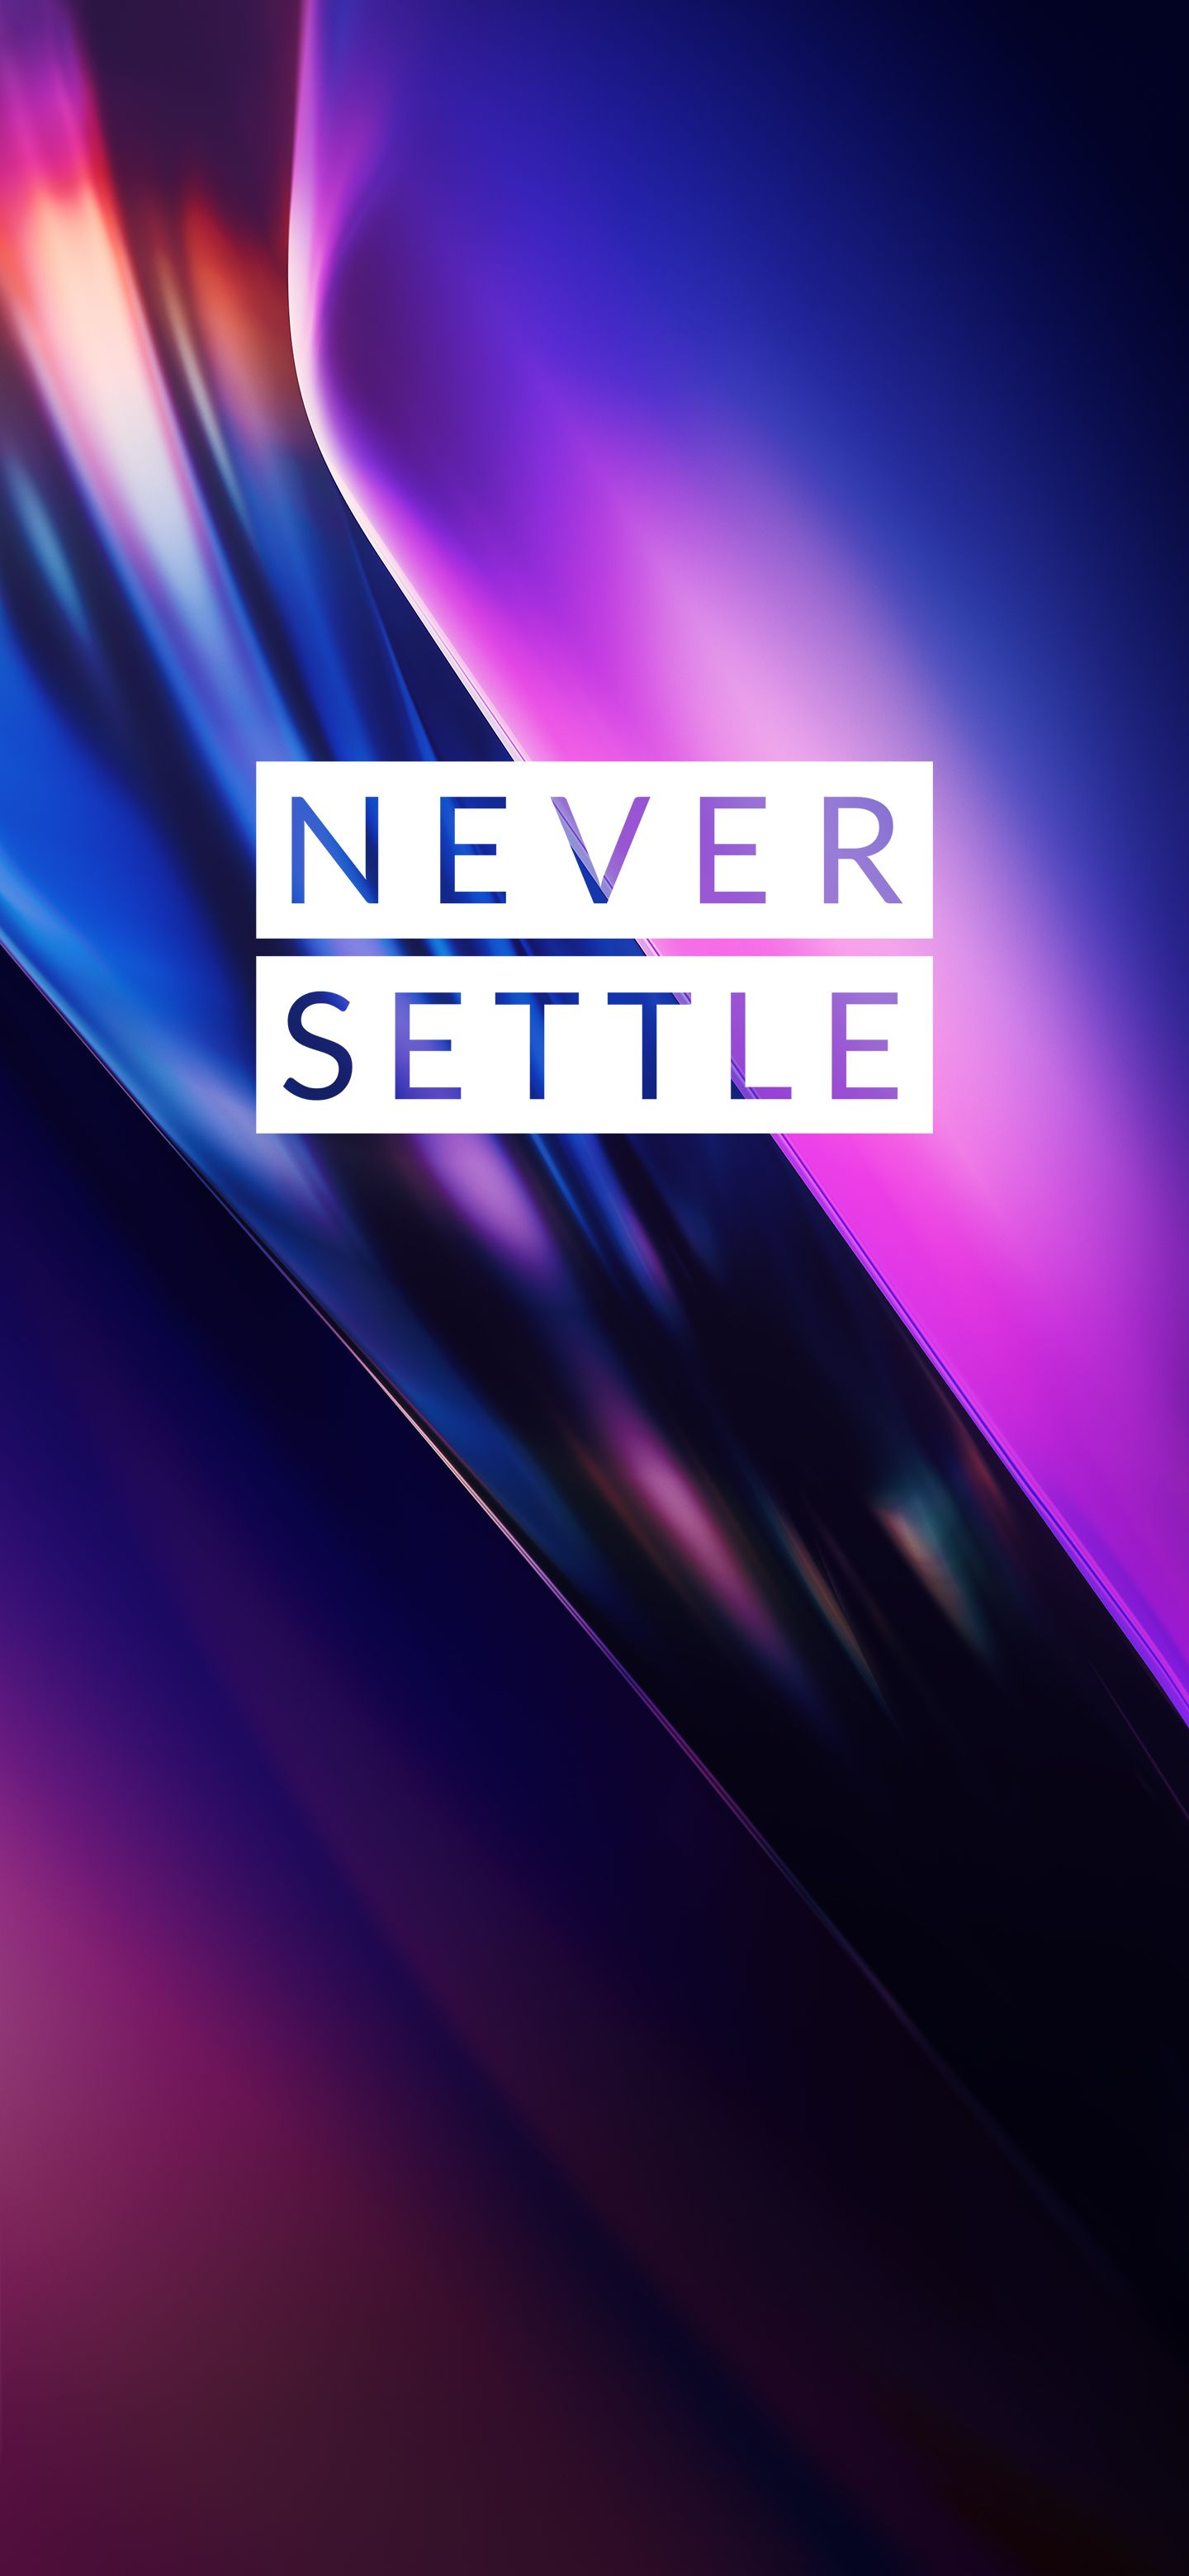 Oneplus 7t Wallpaper Ytechb Exclusive Oneplus Wallpapers Never Settle Wallpapers 4k Wallpaper For Mobile